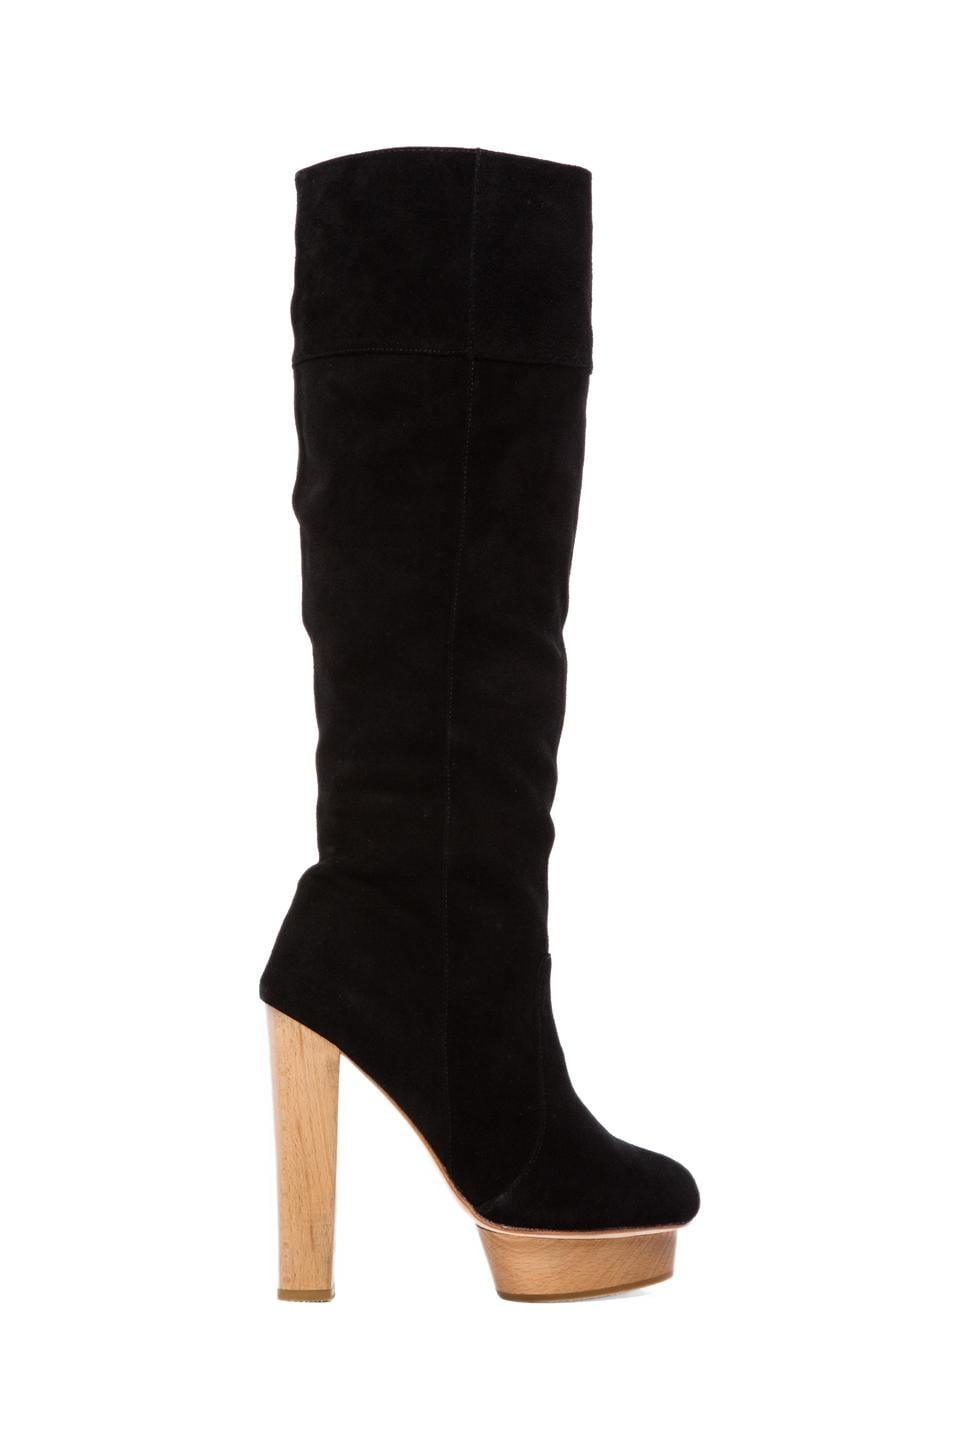 MADISON HARDING Winona Boot in Black